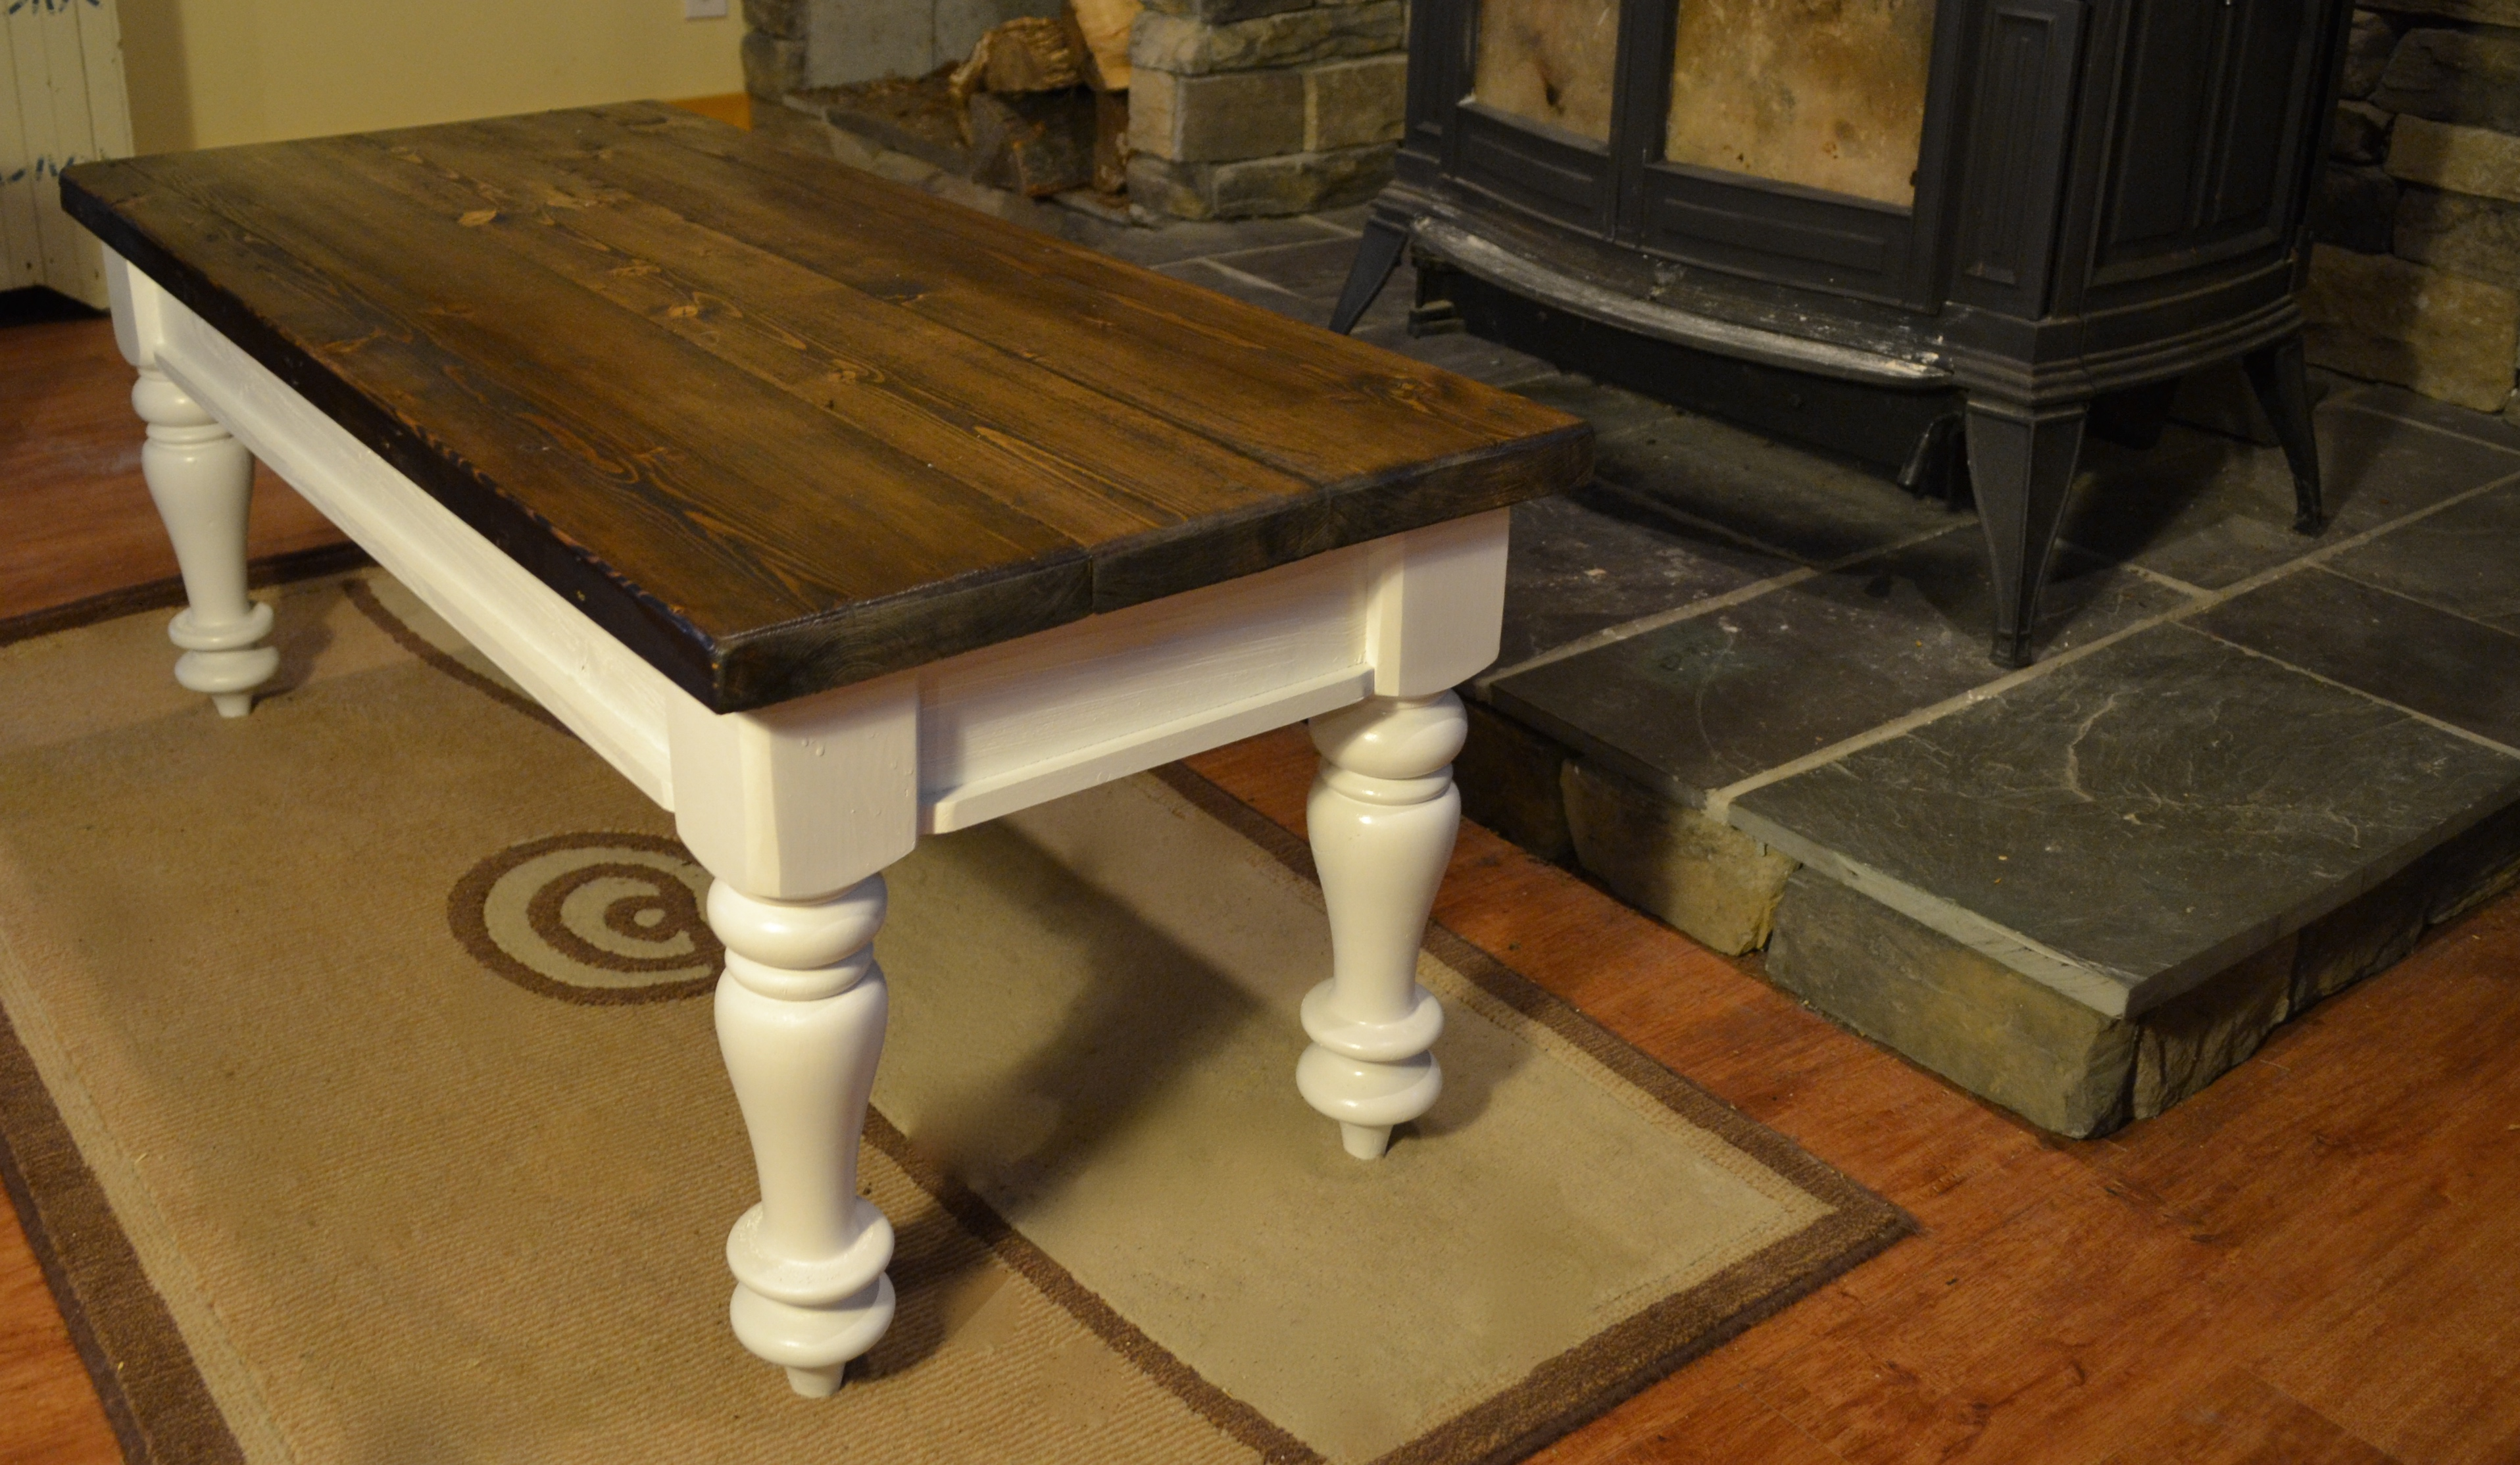 furniture impact your living room design with farmhouse coffee tables casters primitive end clearance table rustic wheels homemade ideas side hemnes hack farmhous natural color